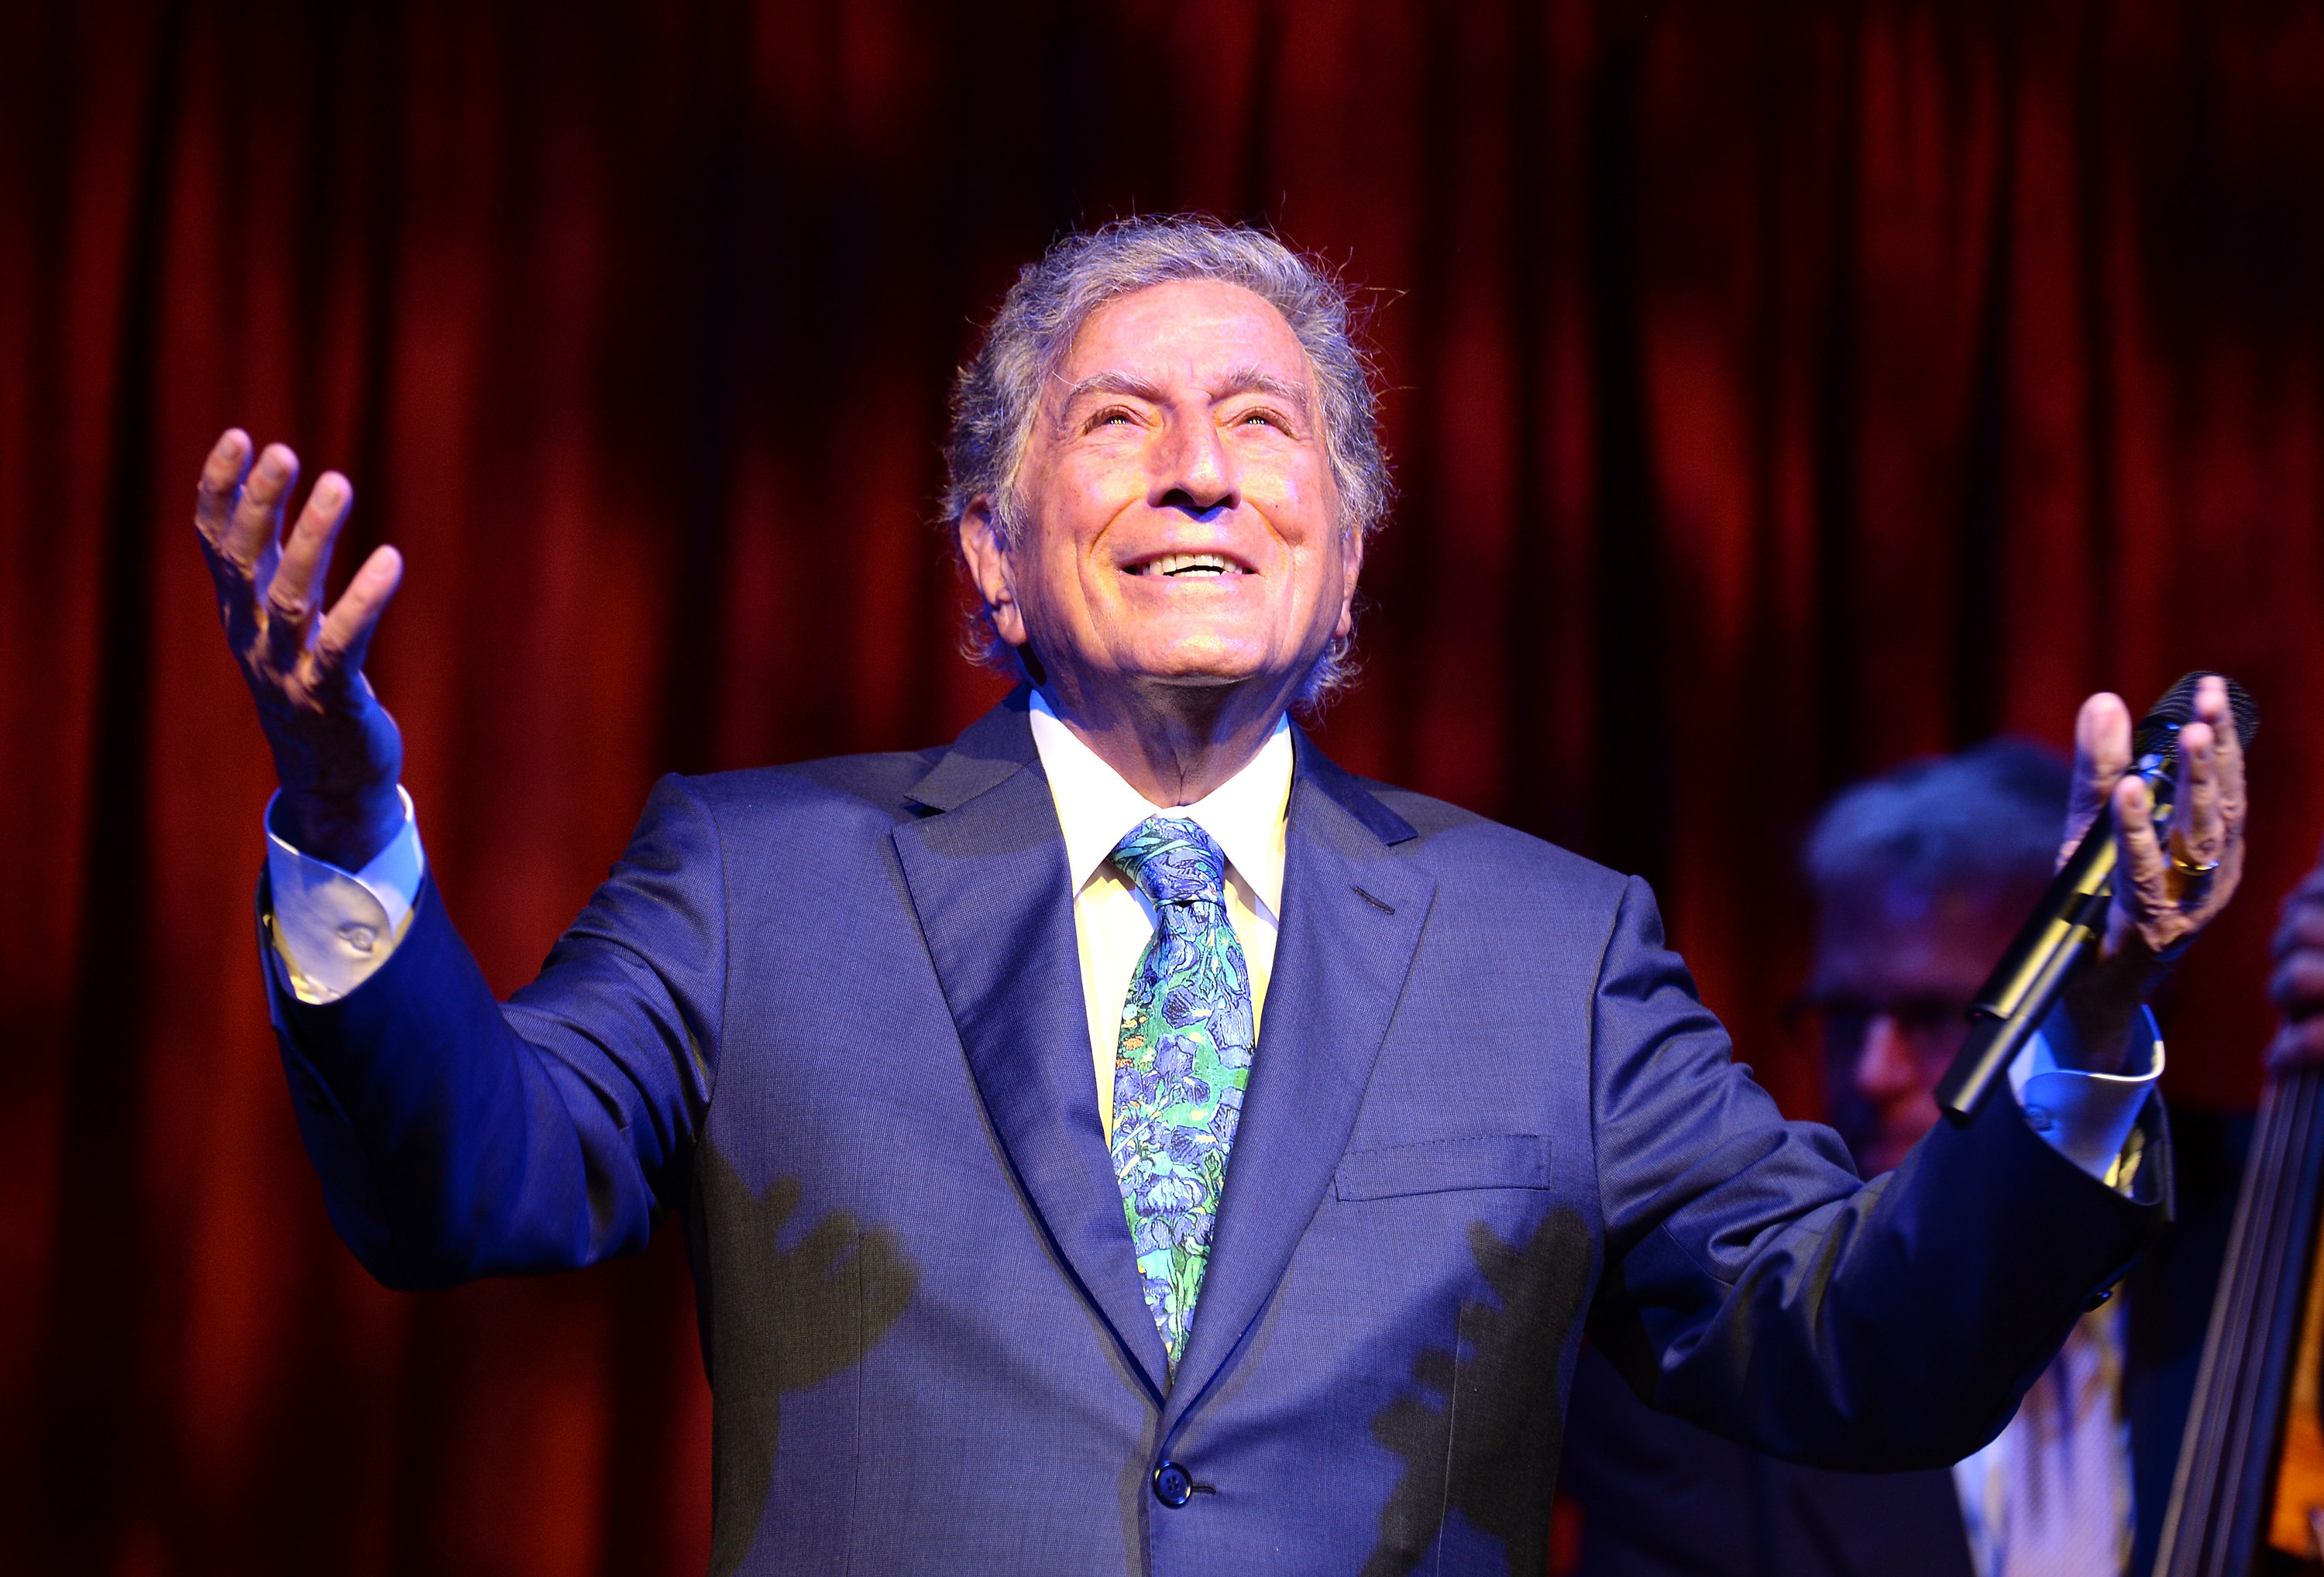 With practically the entire 20th century's songbook of standards in his pocket, Tony Bennett's repertoire is envious. (Dave Kotinsky/Getty Images file photo)